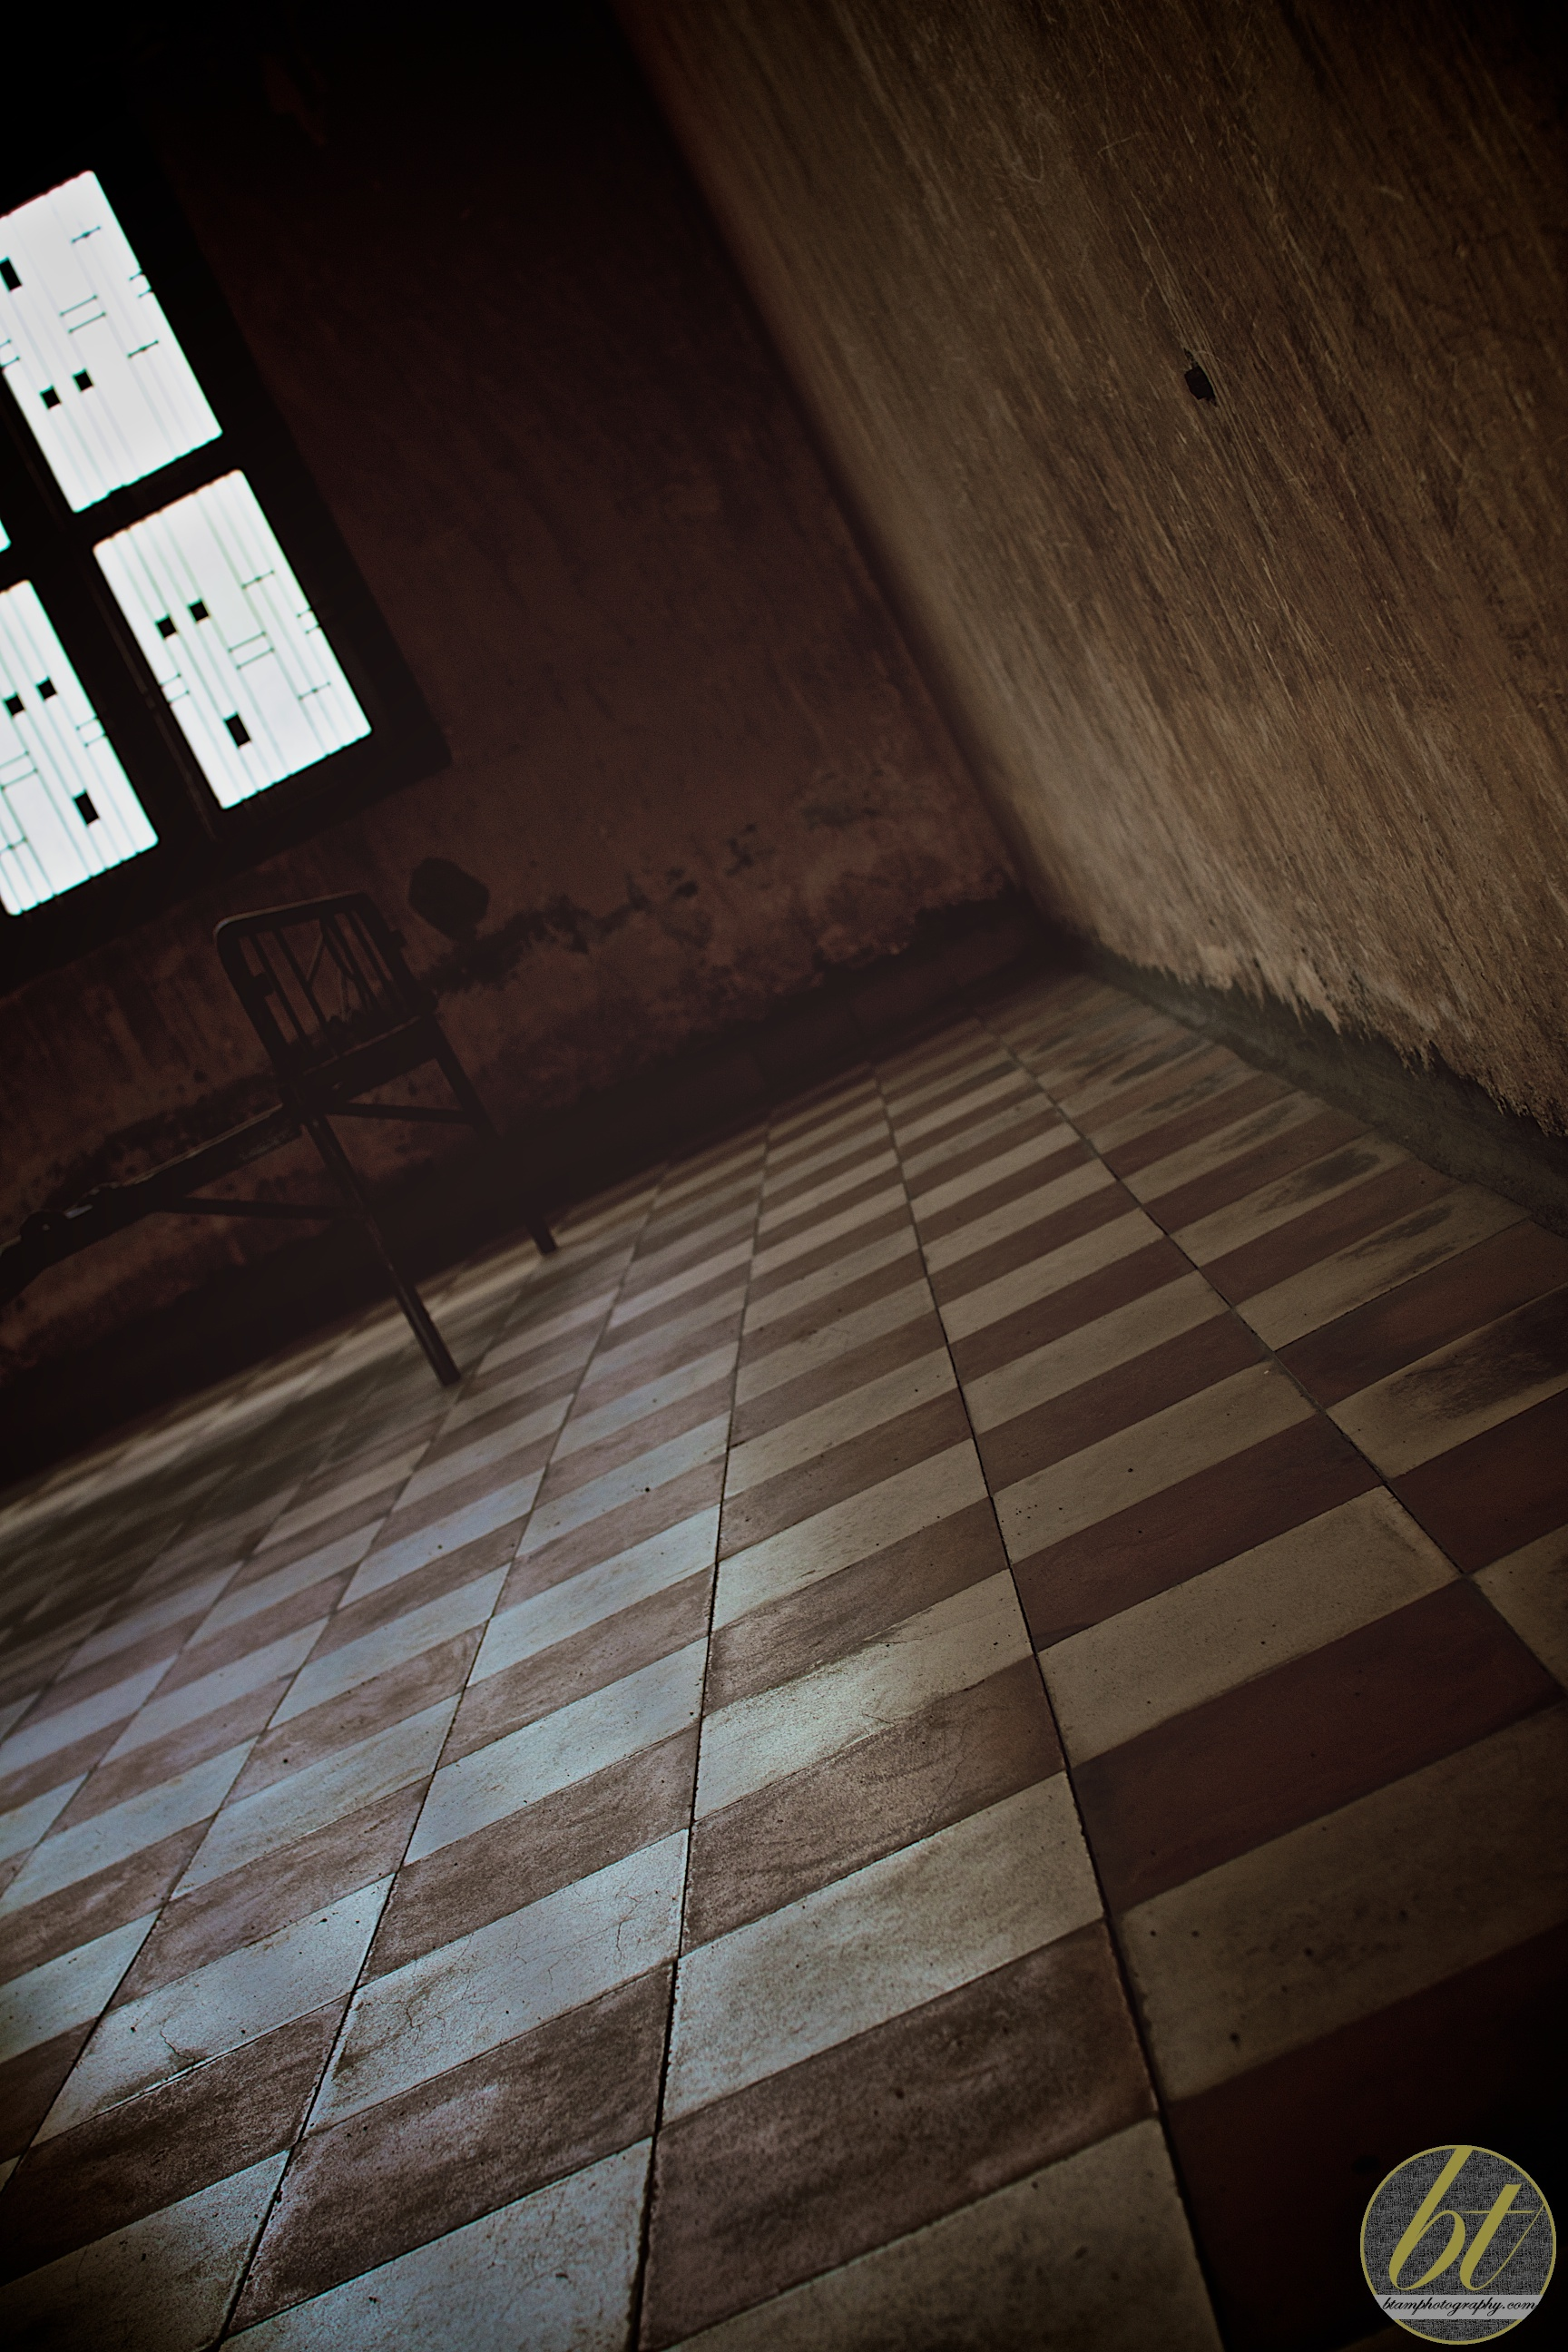 tuol sleng genocide museum (s21) - torture room